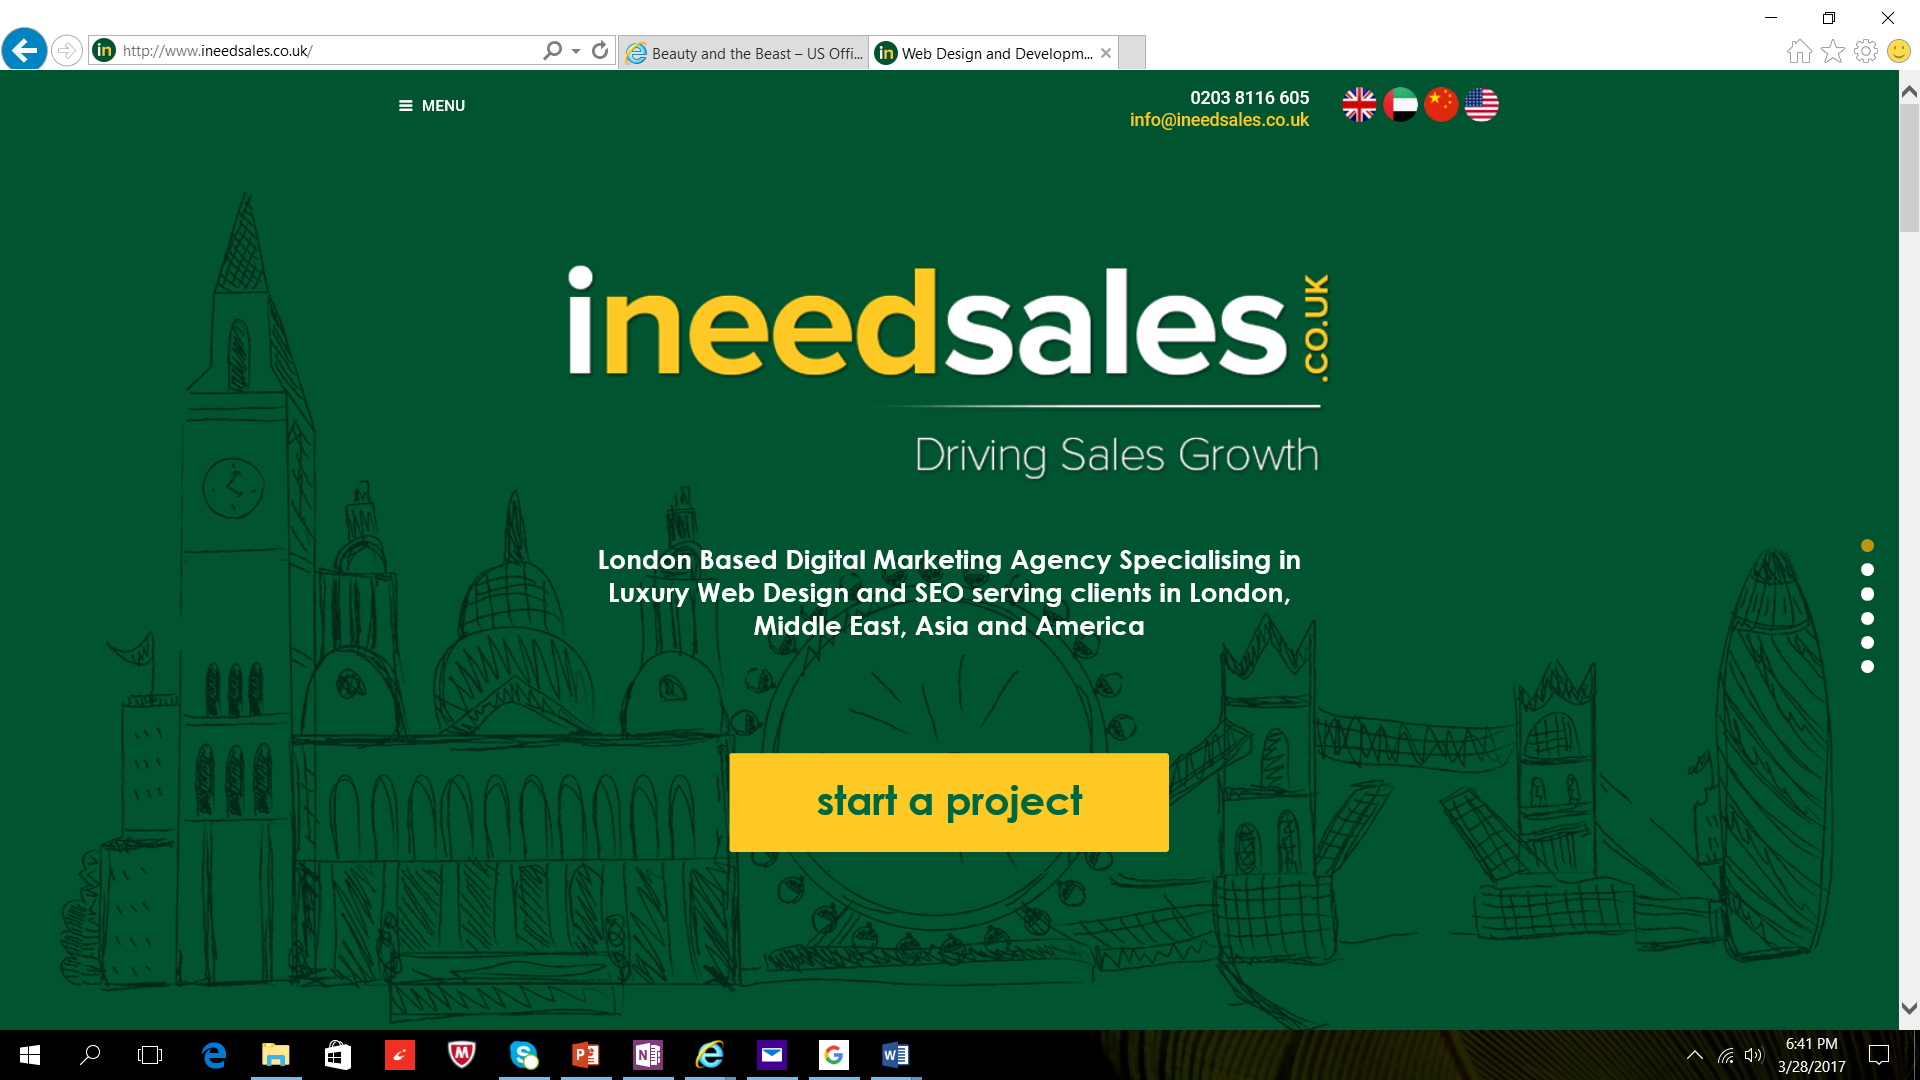 Ineedsales.co.uk